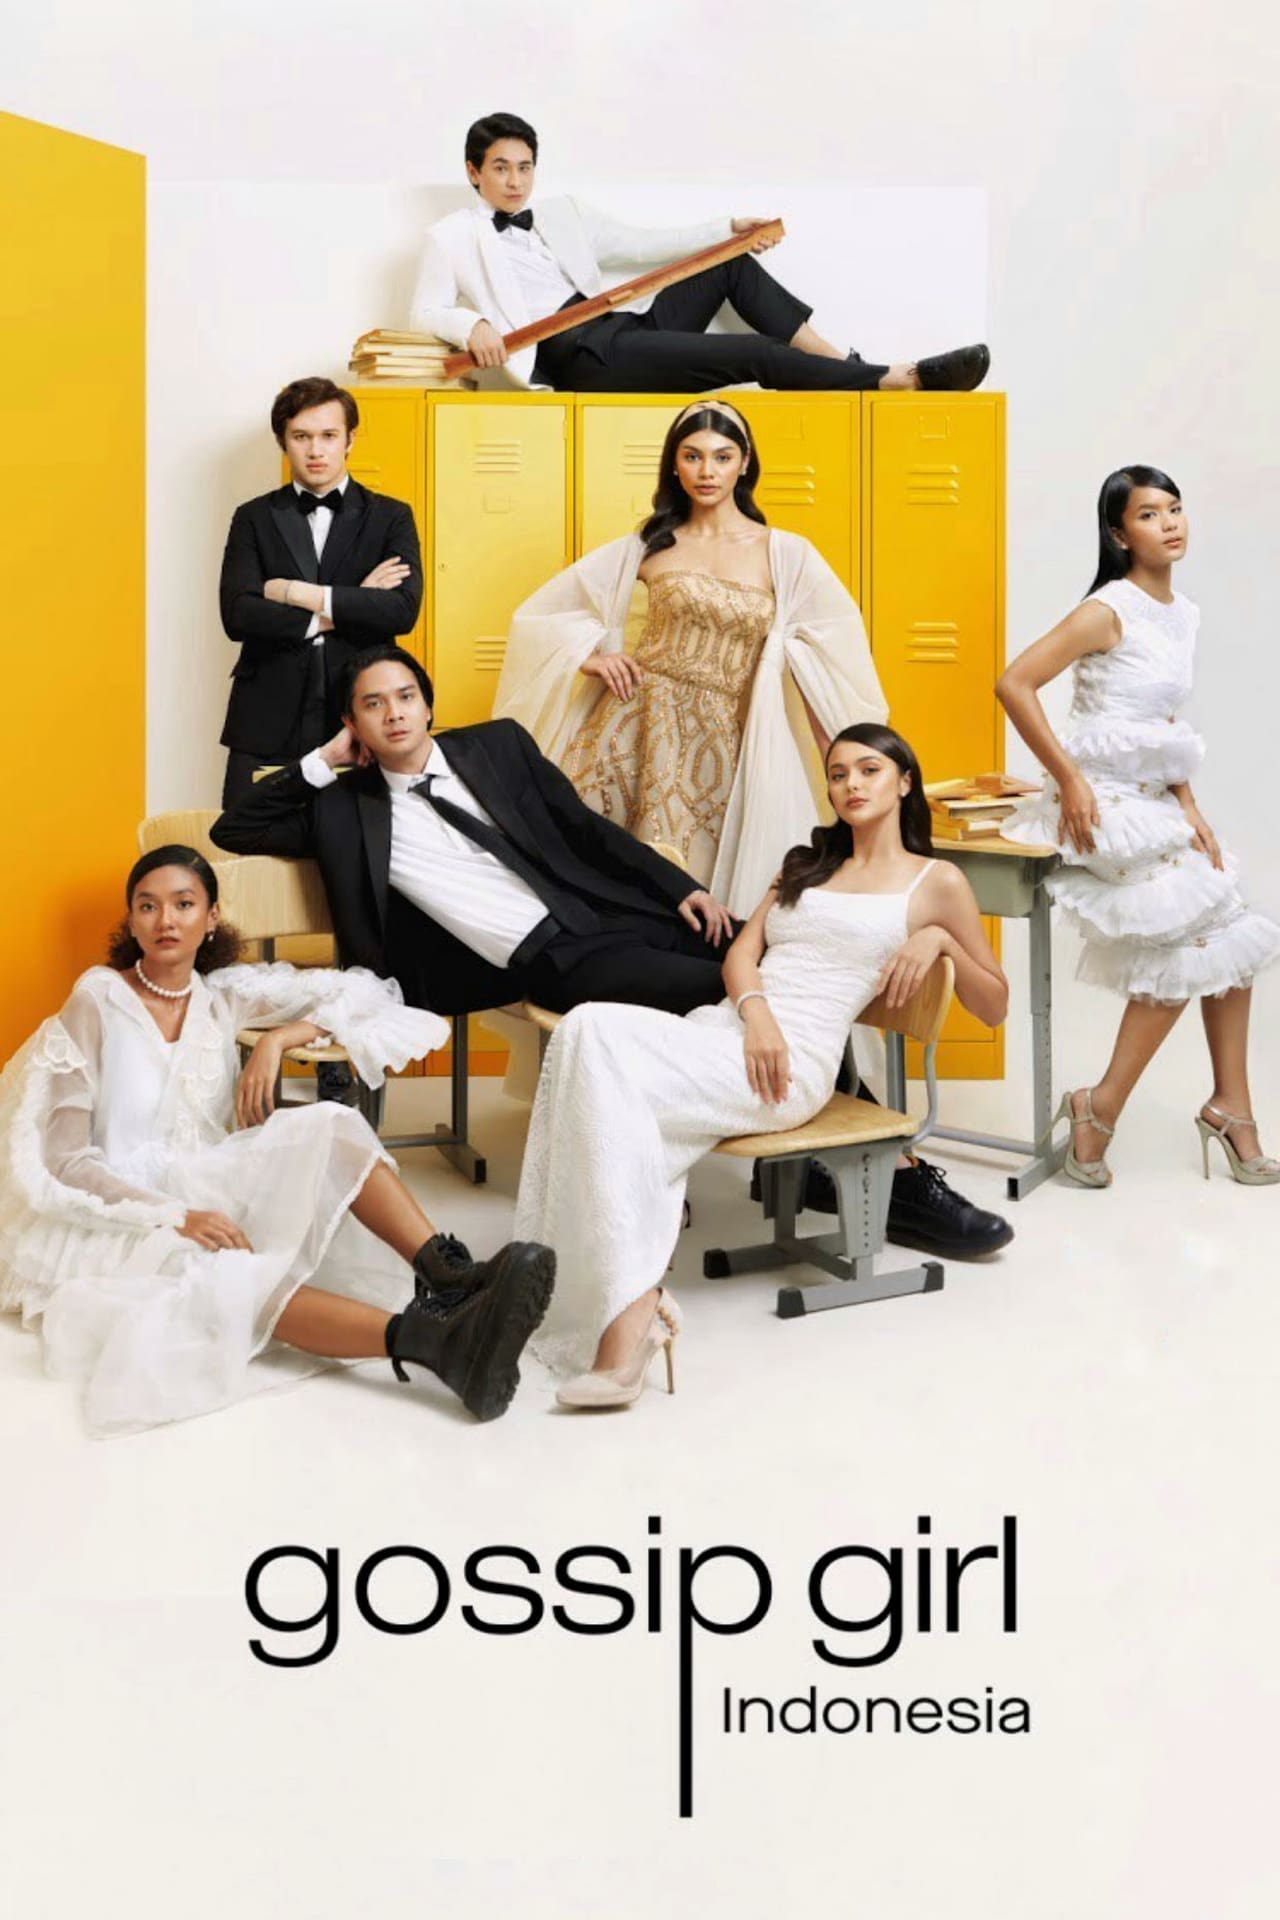 Gossip Girl Indonesia (2020) poster